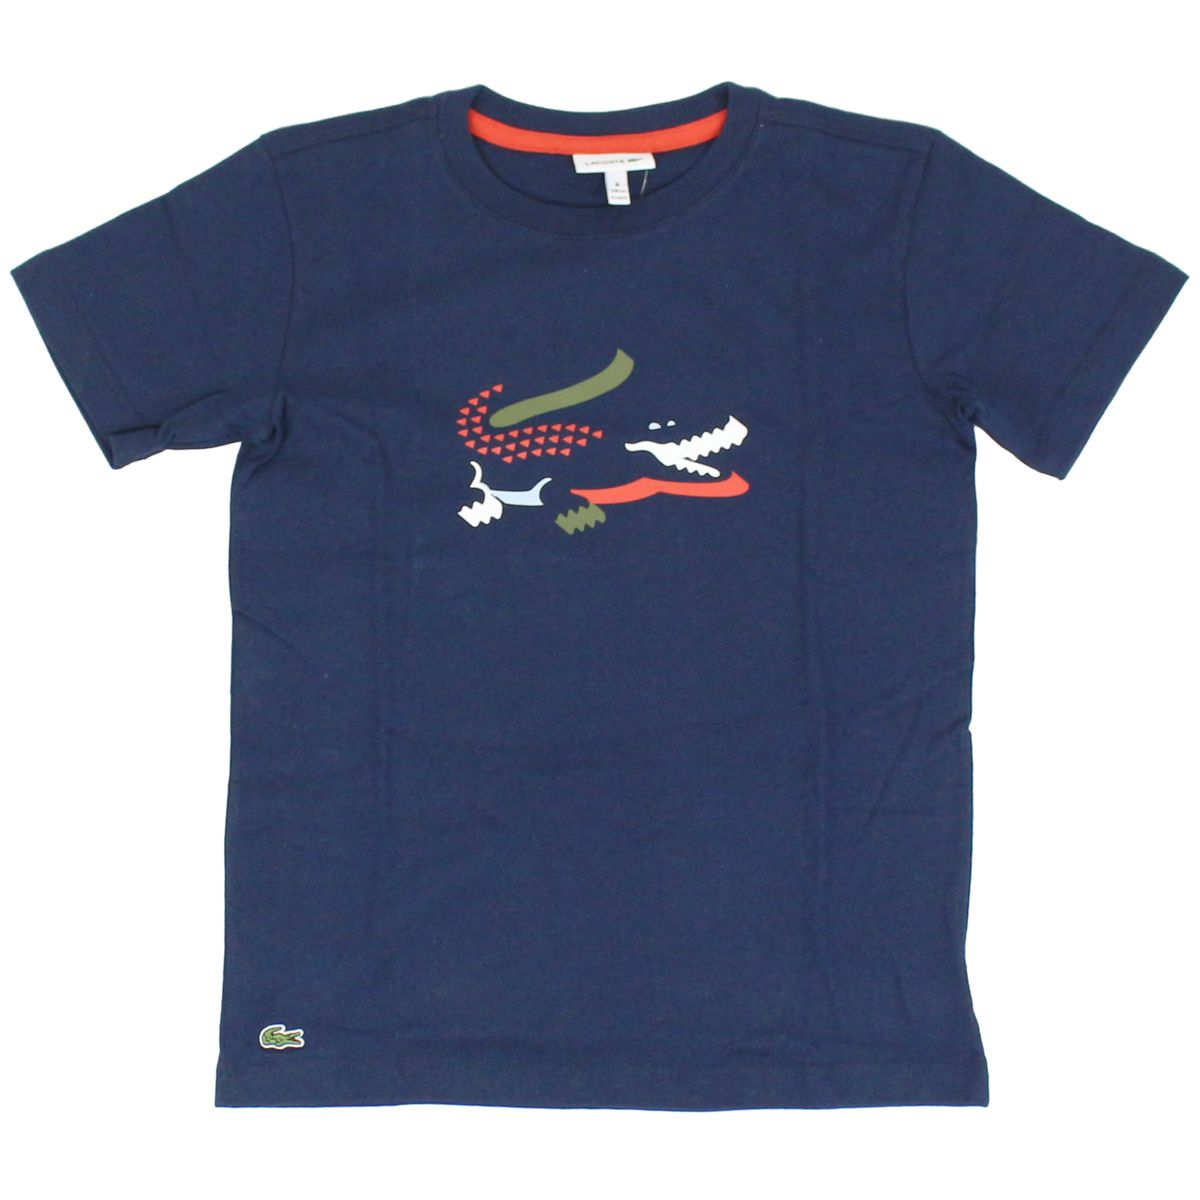 Crocodile print cotton t-shirt Blue Lacoste